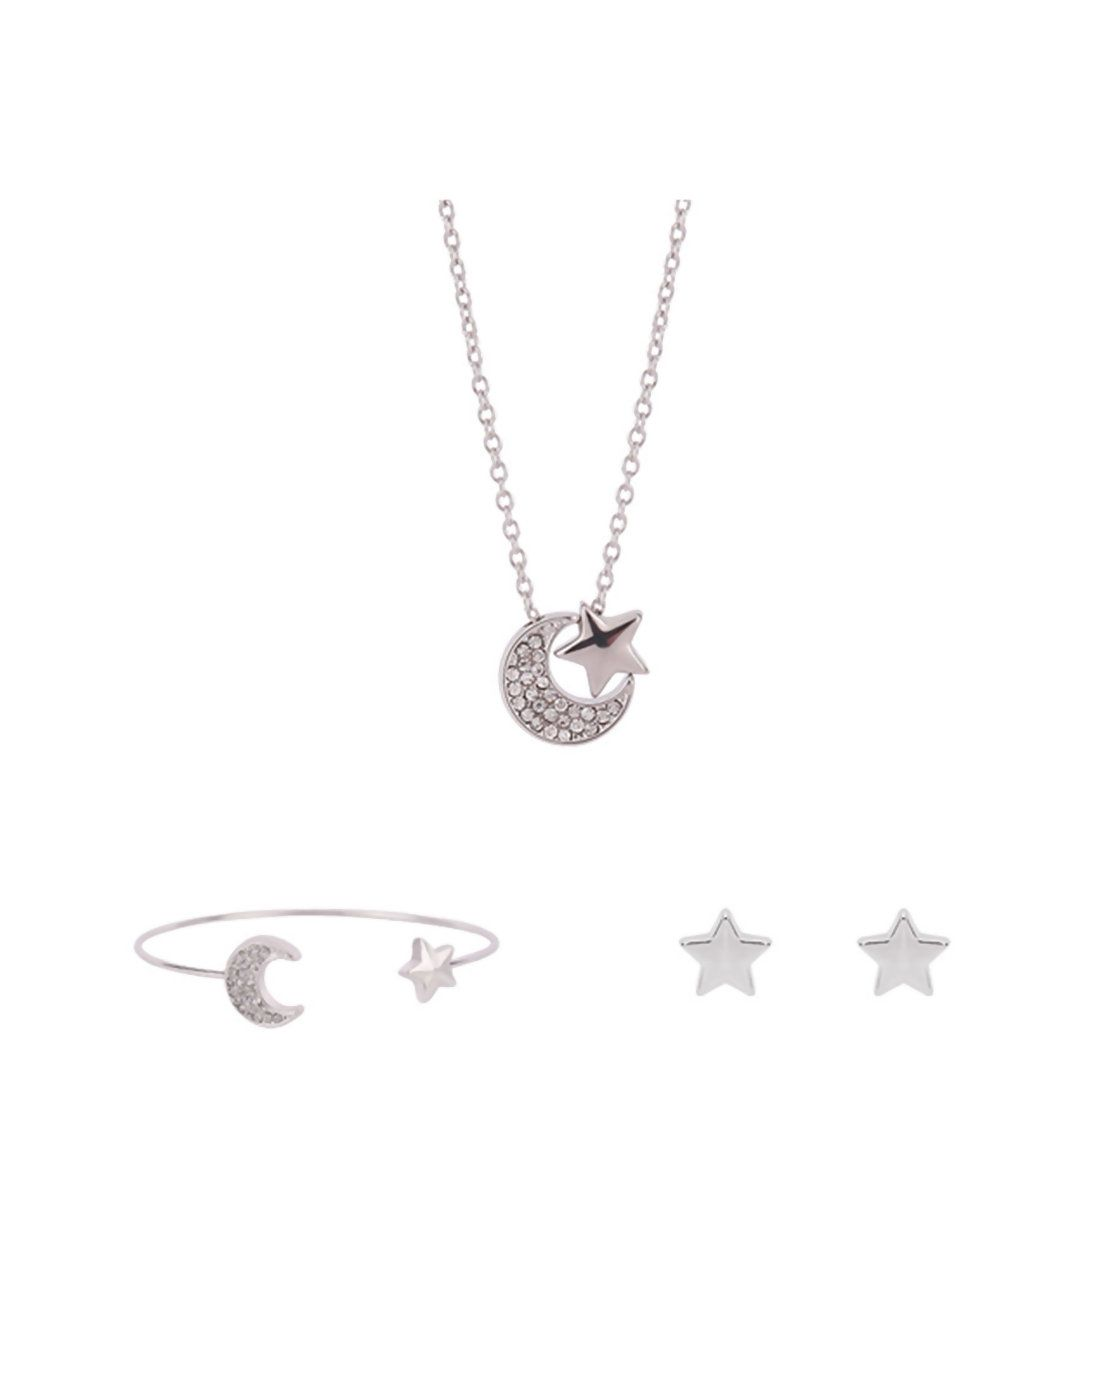 Adorewe vipme jewelry sets rich long silver gold plated star moon